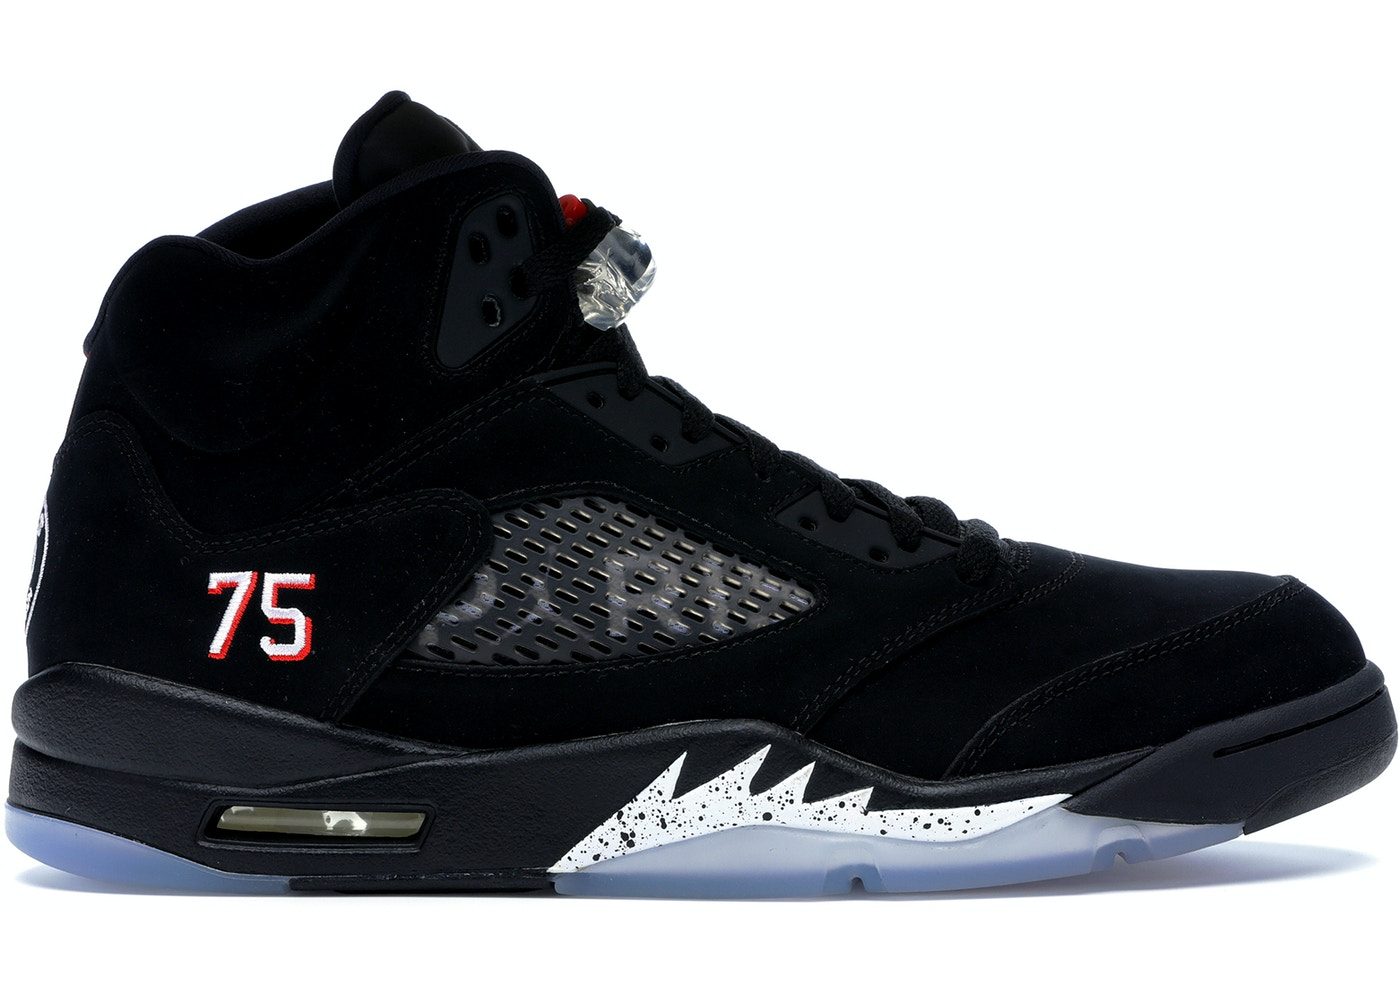 1e149d83 Buy Air Jordan 5 Shoes & Deadstock Sneakers